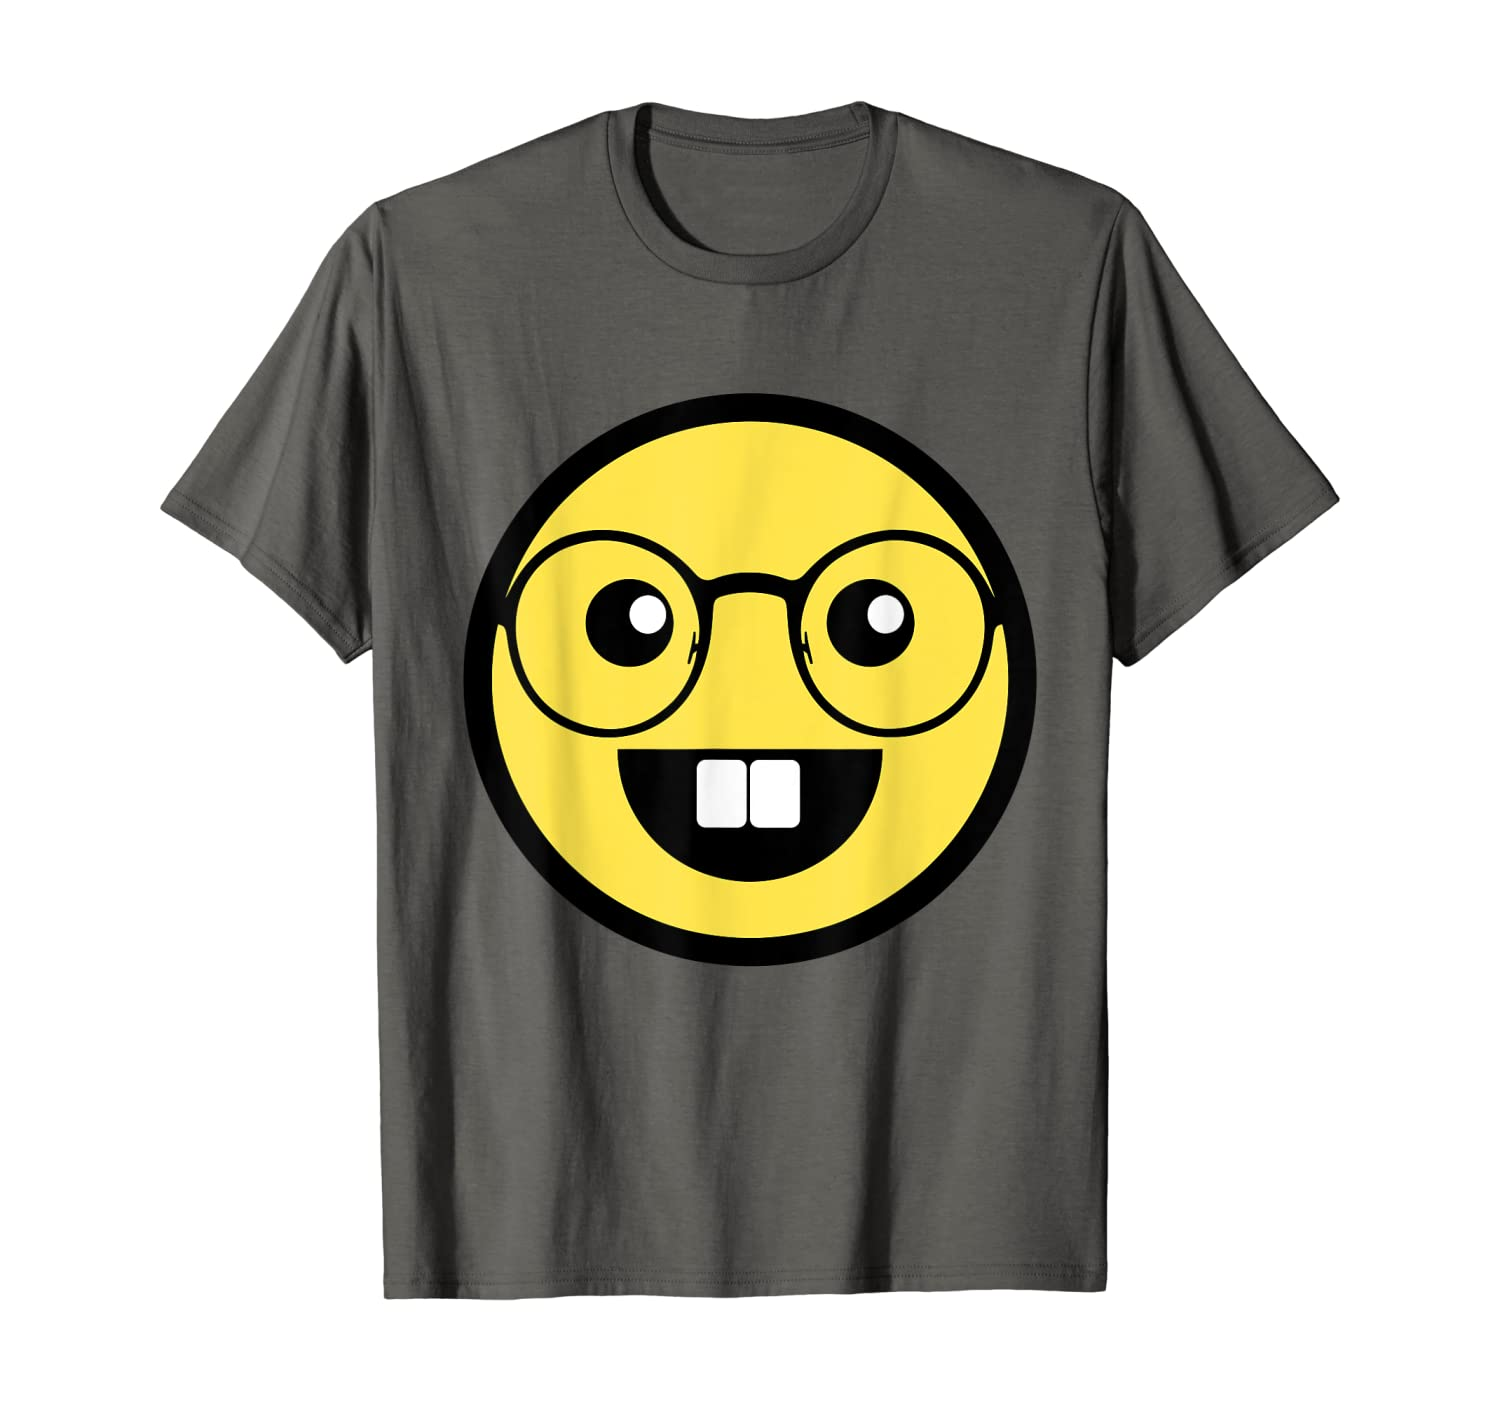 Funny Geek With Eye Glasses Emojis T-Shirt - Nerd Gift Idea